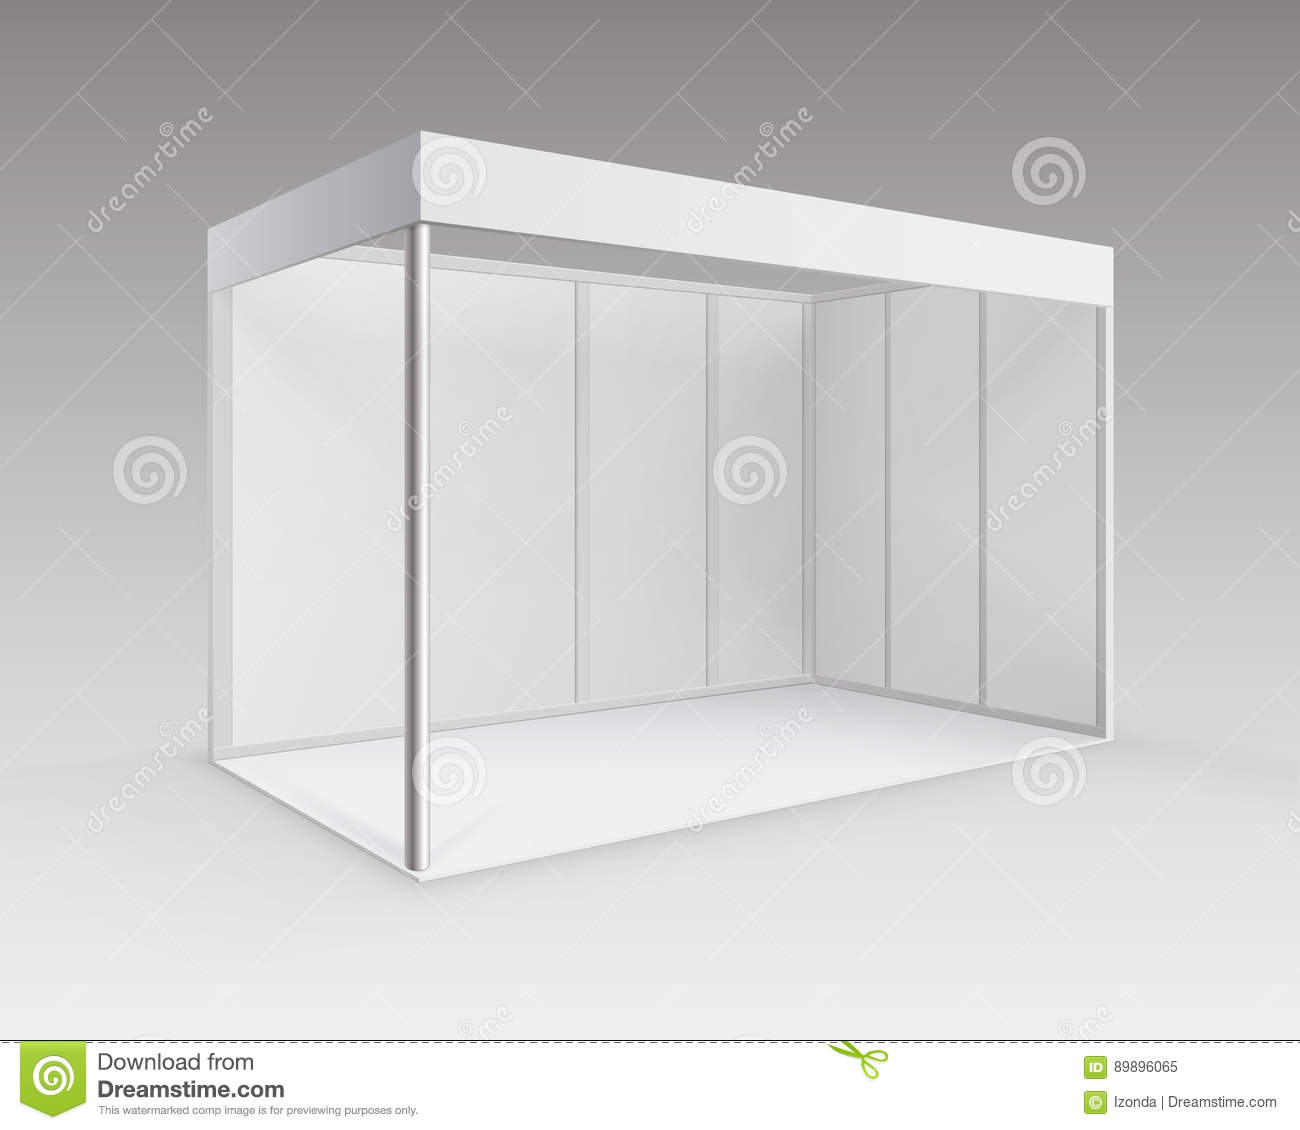 Exhibition Booth Blank : White blank indoor trade exhibition booth standard stand